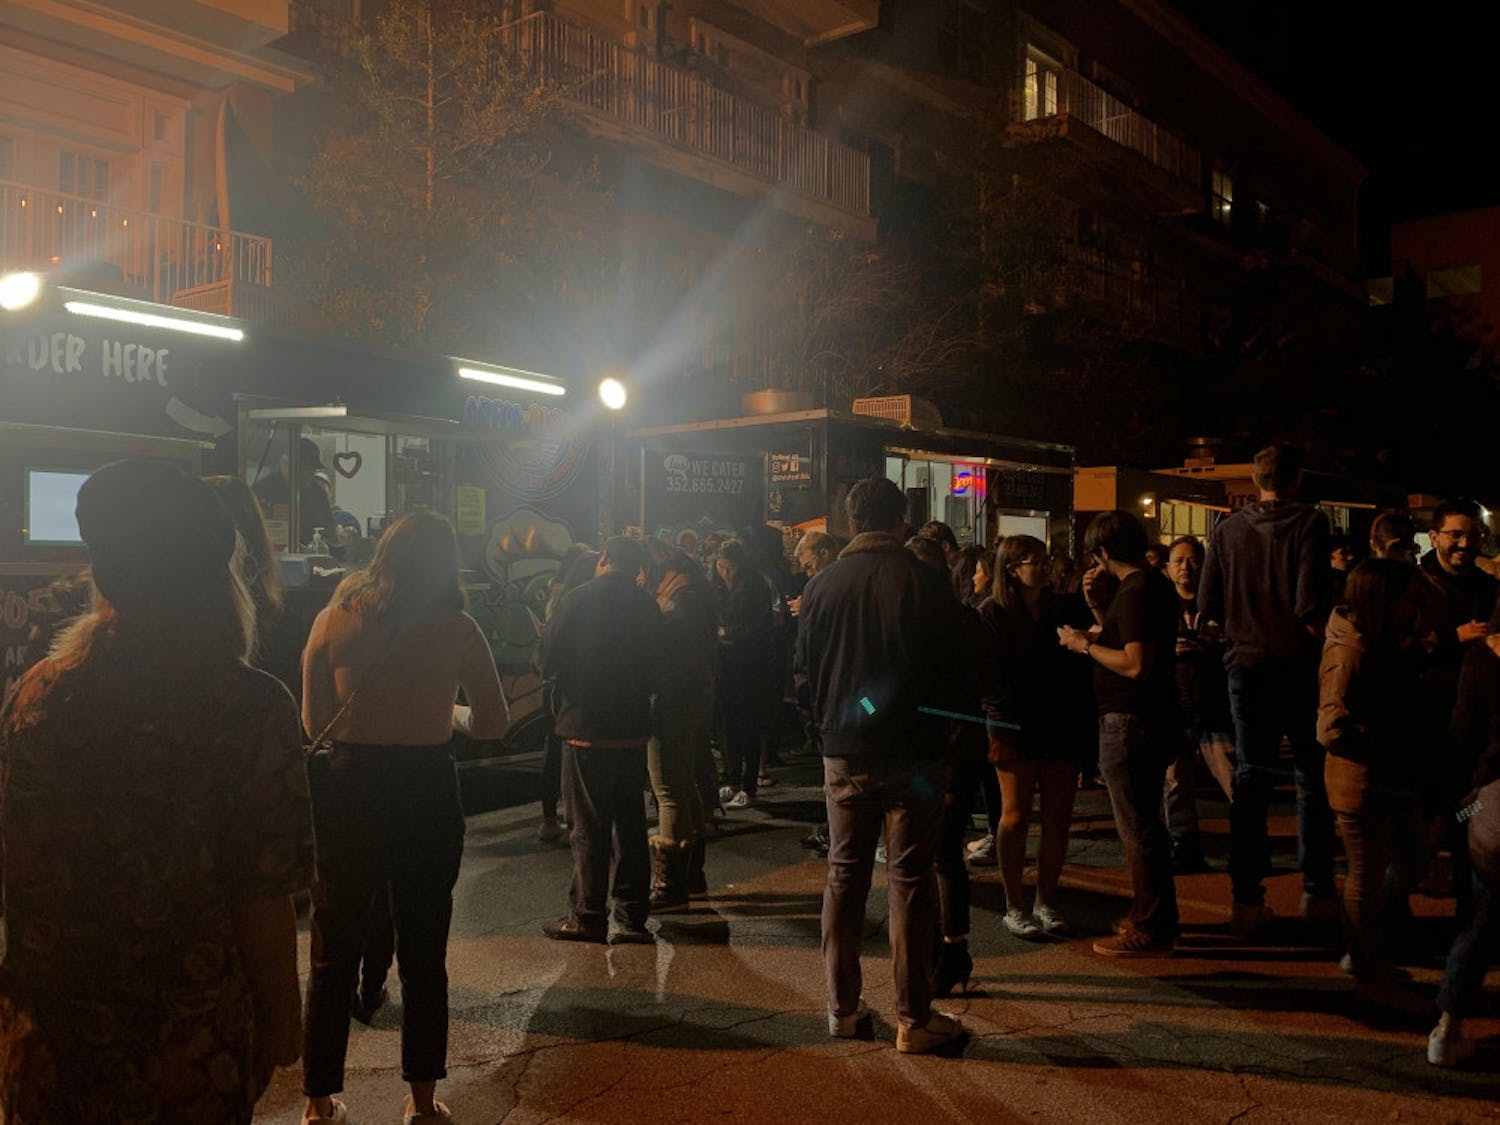 Crowds gathered in High Dive parking lot Saturday night for High Dive Food Truck Rally's 7th anniversary event.